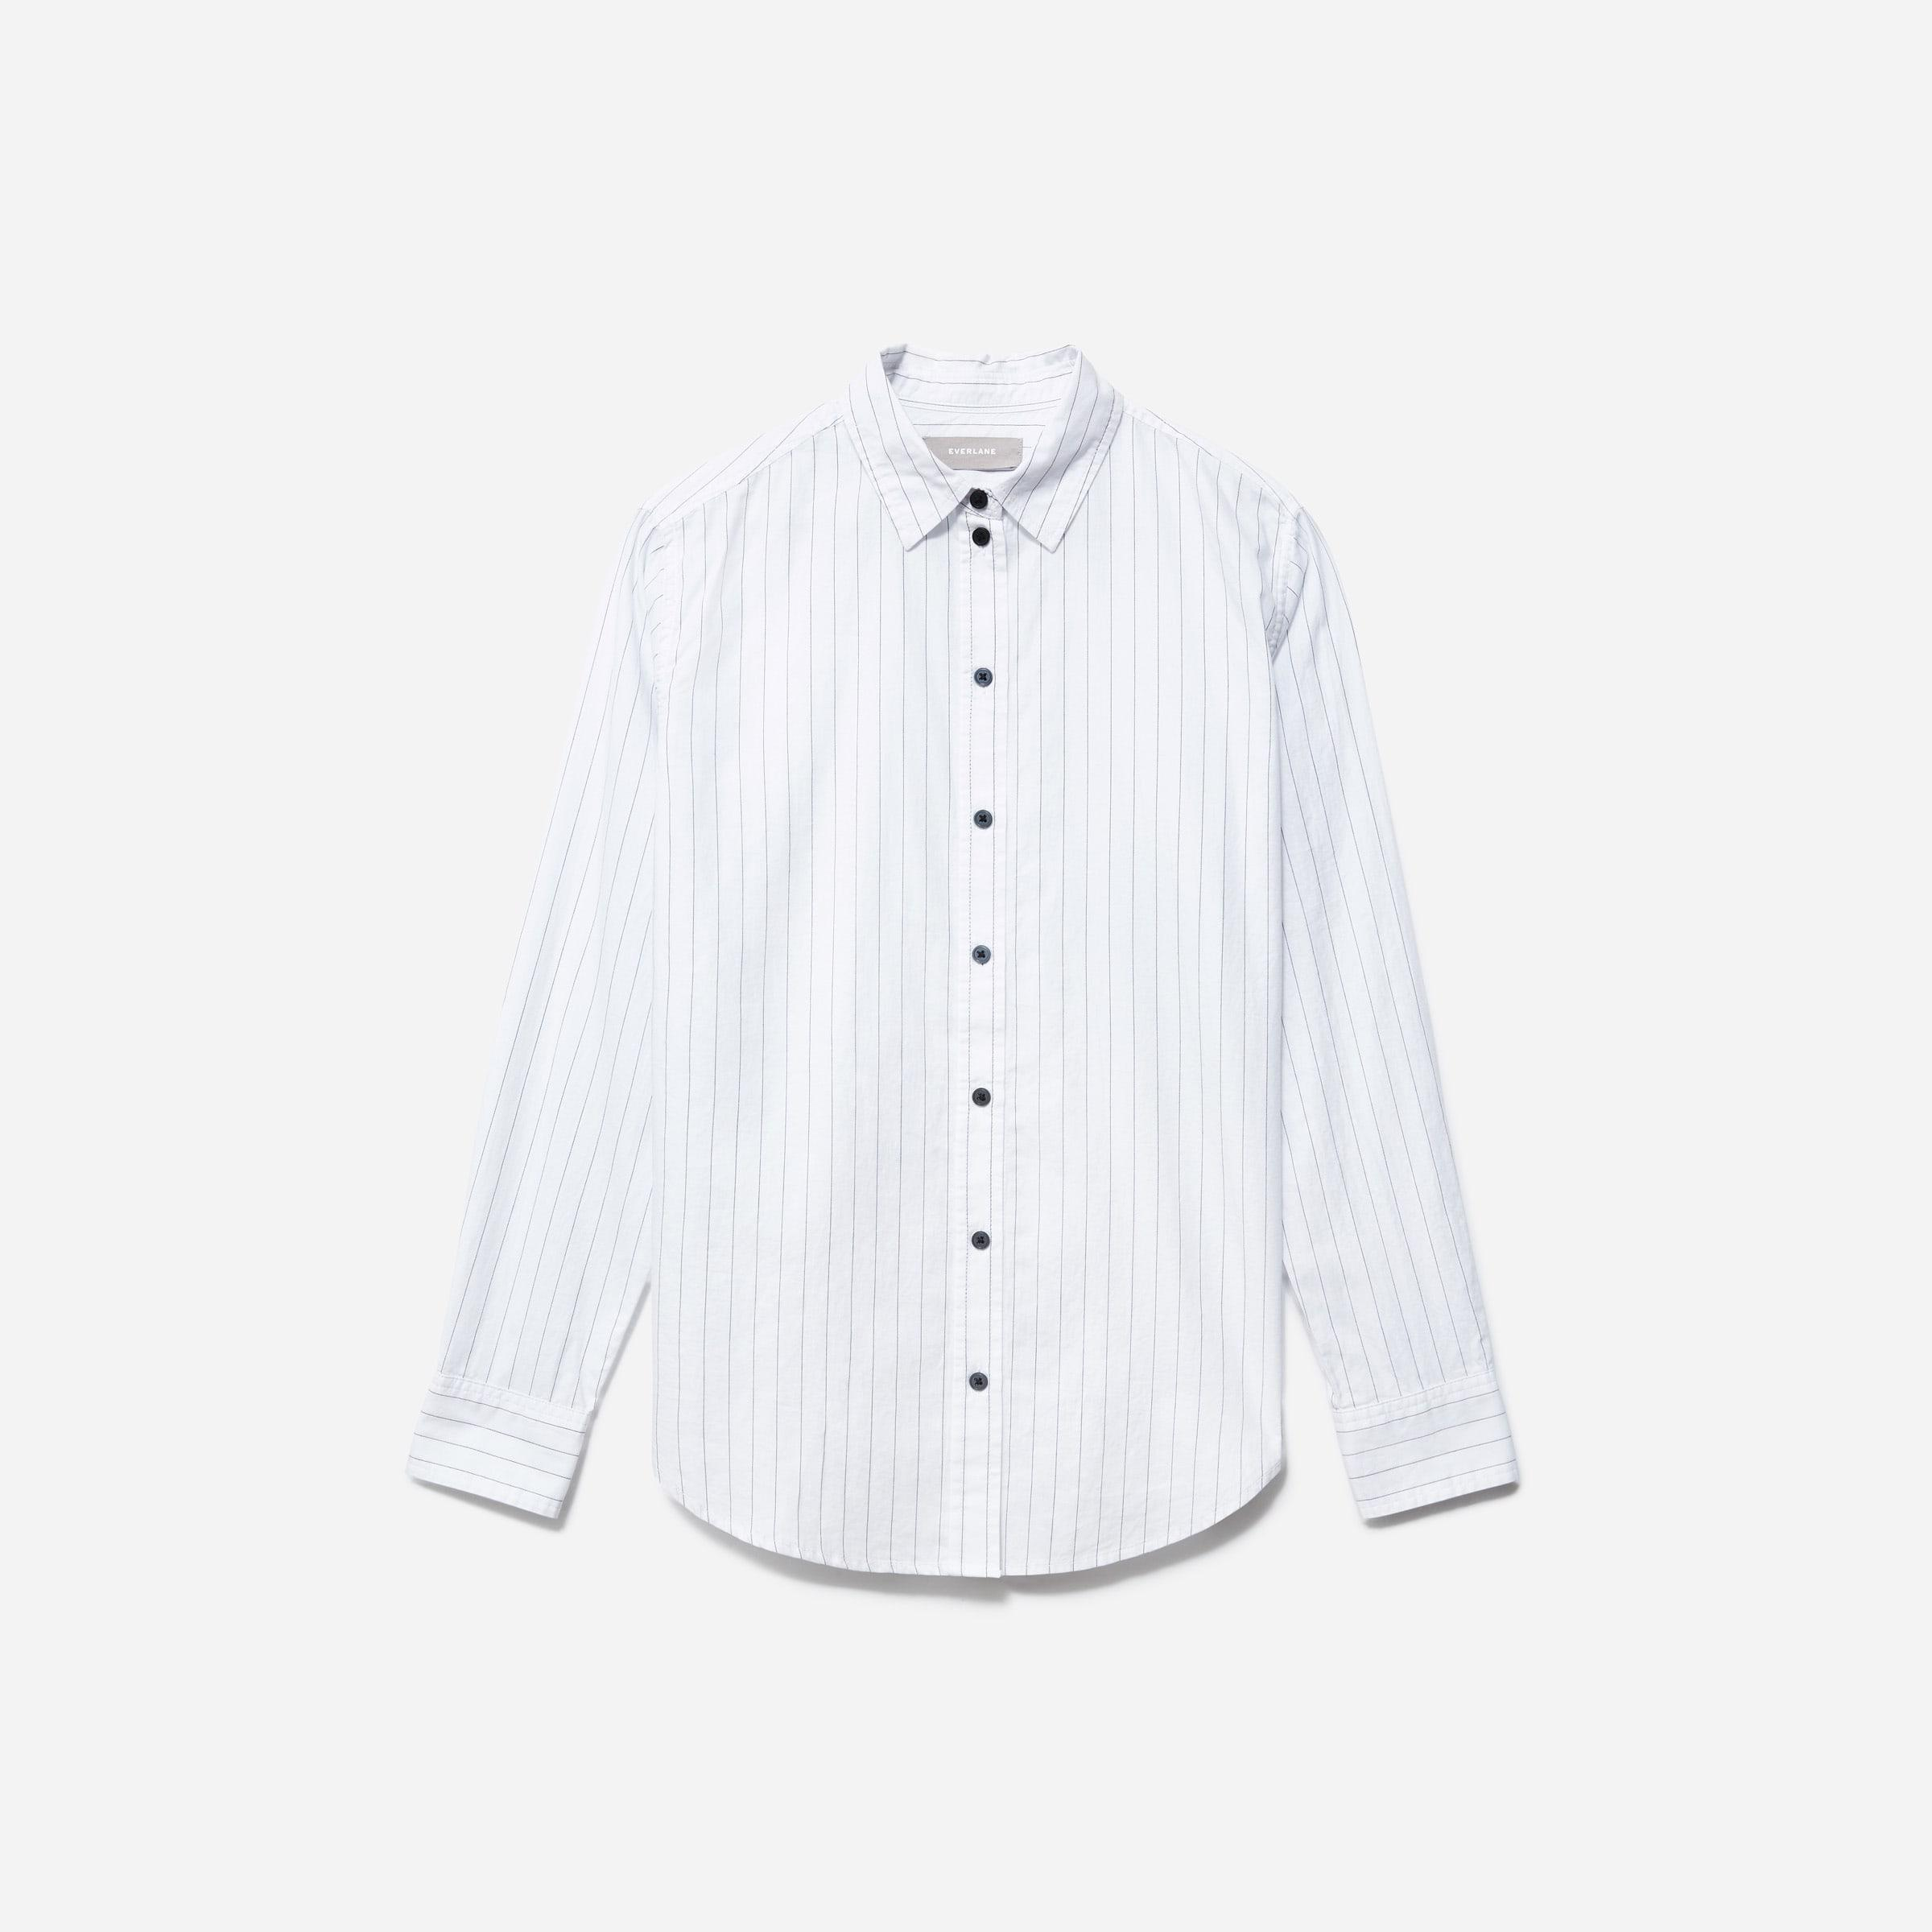 The Silky Cotton Relaxed Shirt 5